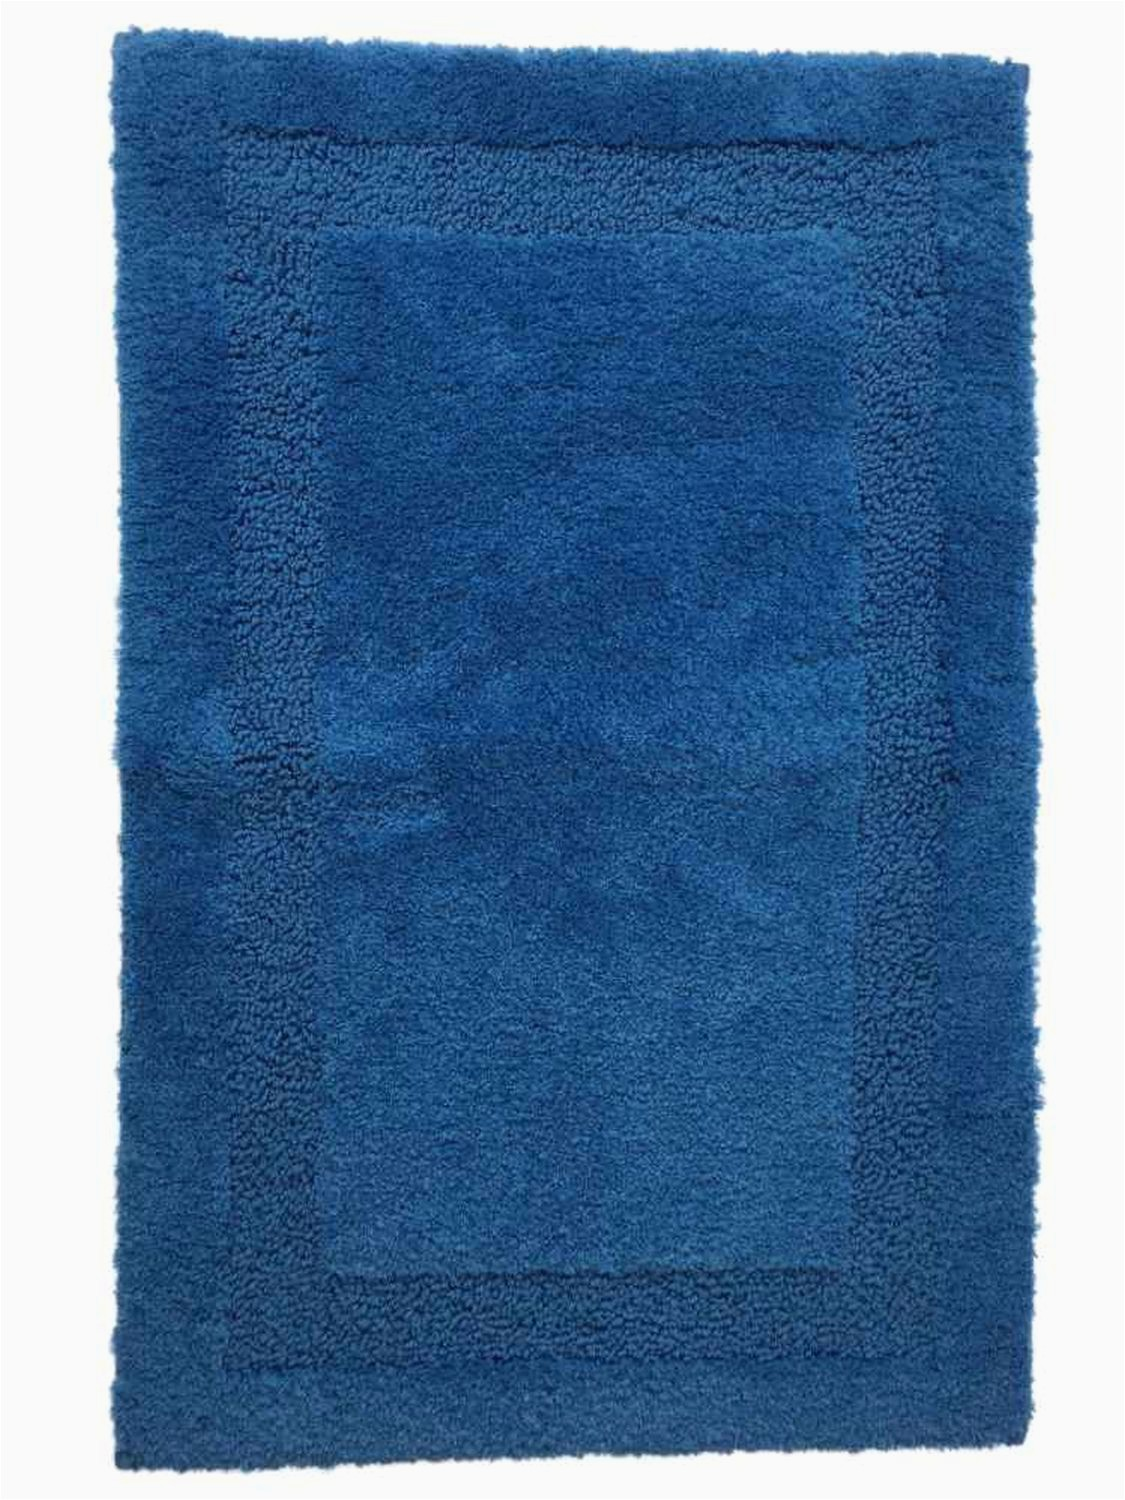 Riviera Home Retro Bath Rug Chaps Richmond Riviera Blue Plush Pile Throw Rug 25×40 Skid Resistant Bath Mat Walmart